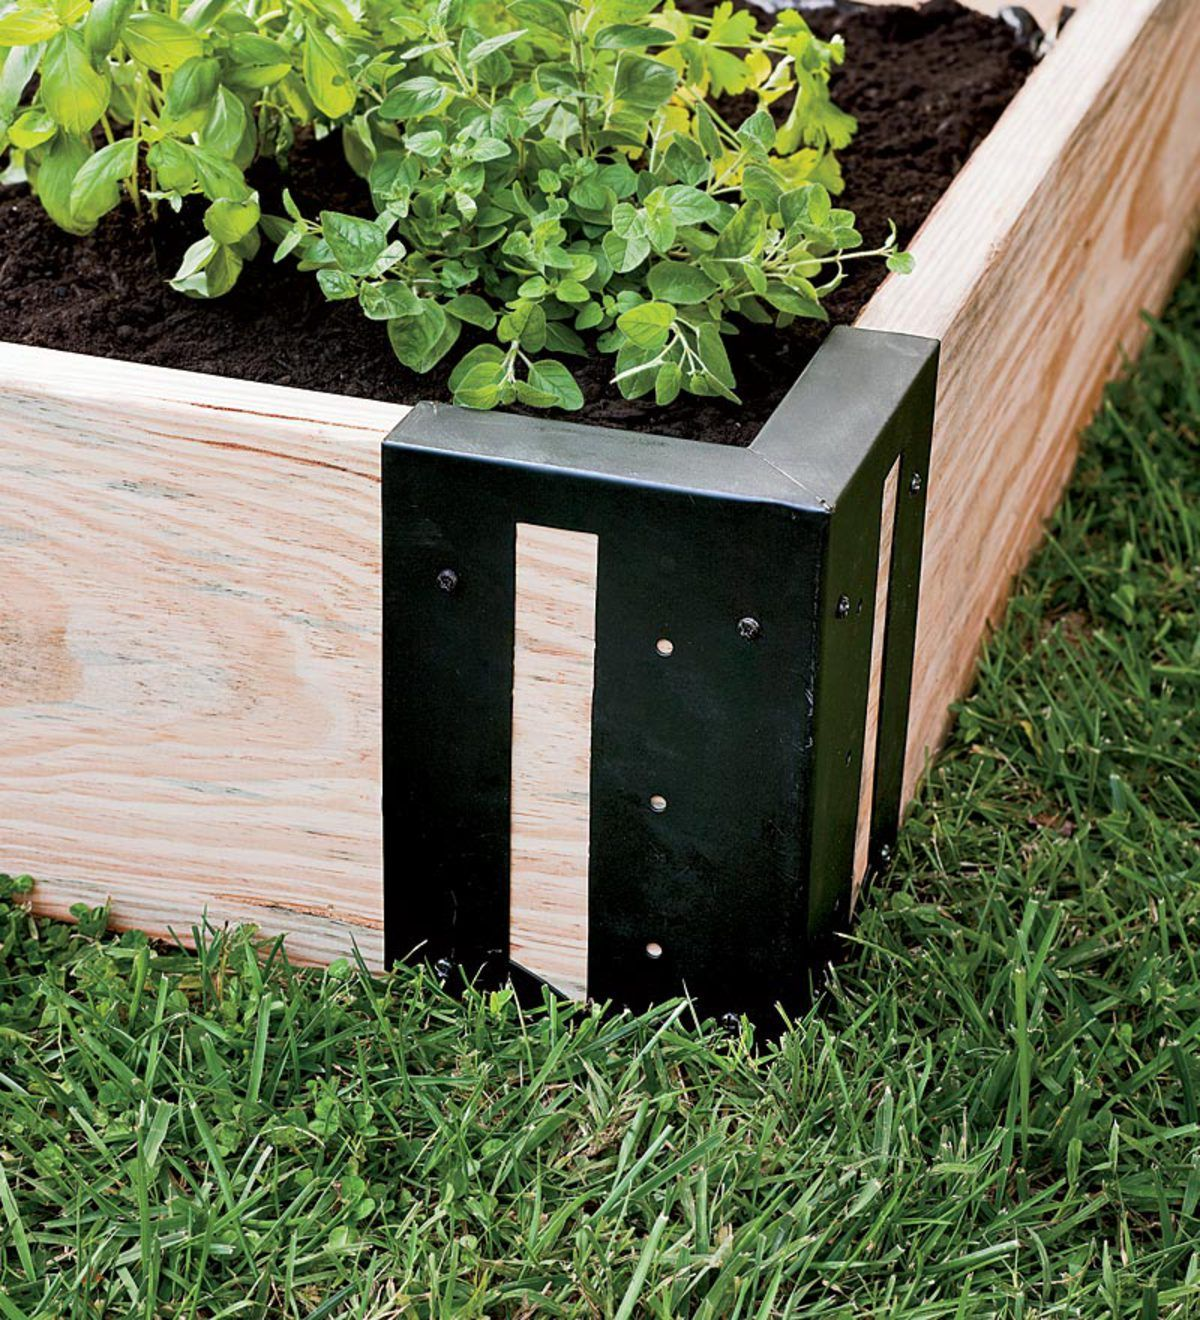 Our Steel Raised Bed Corner Brackets Make It Easy To Build Raised Beds Using Your Own Raised Bed Corners Building A Raised Garden Vegetable Garden Raised Beds